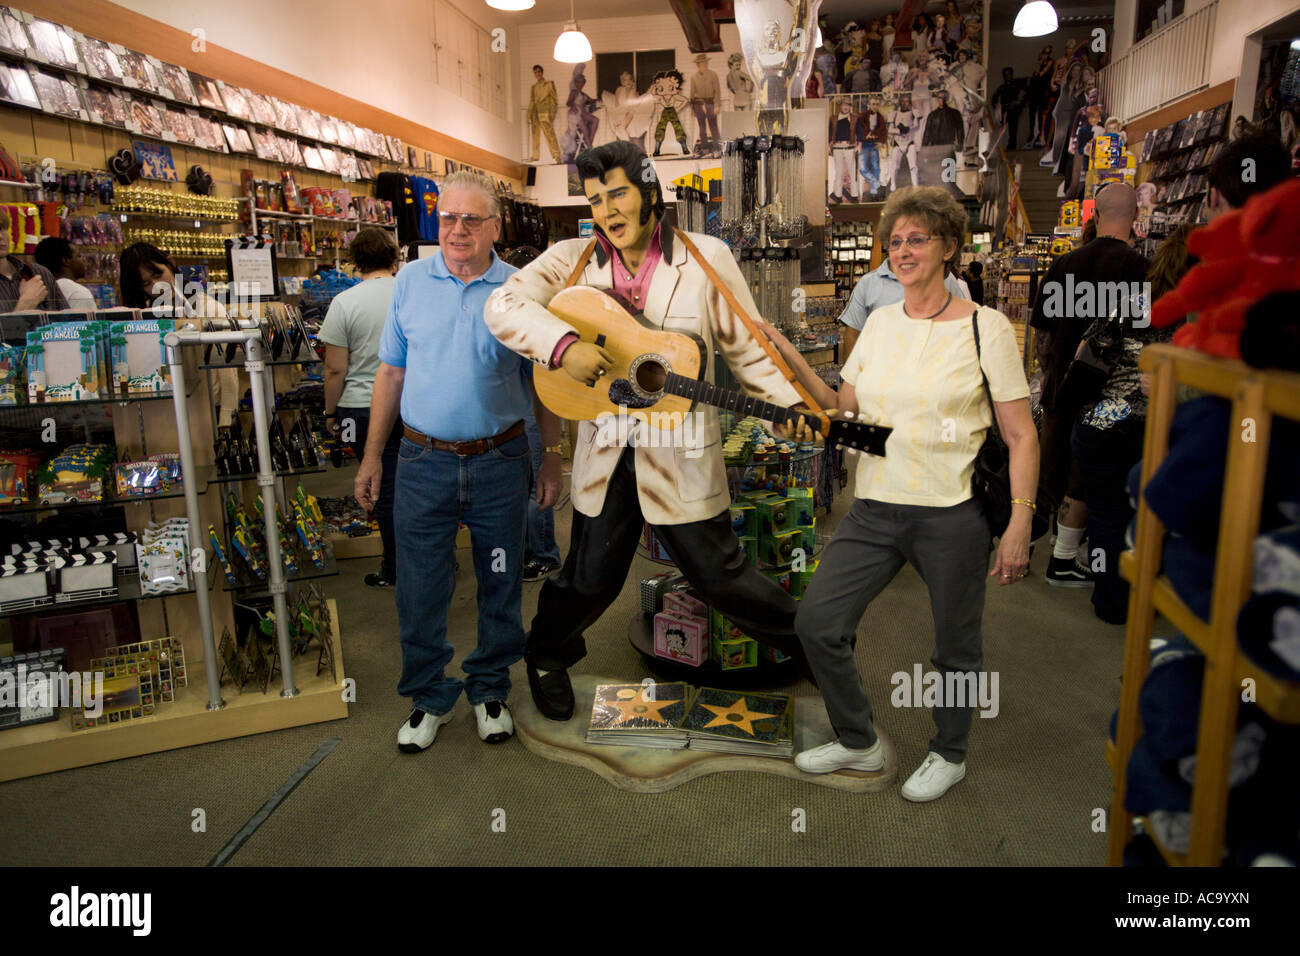 A gift shop across the street from the Kodak Theater with an Elvis ...